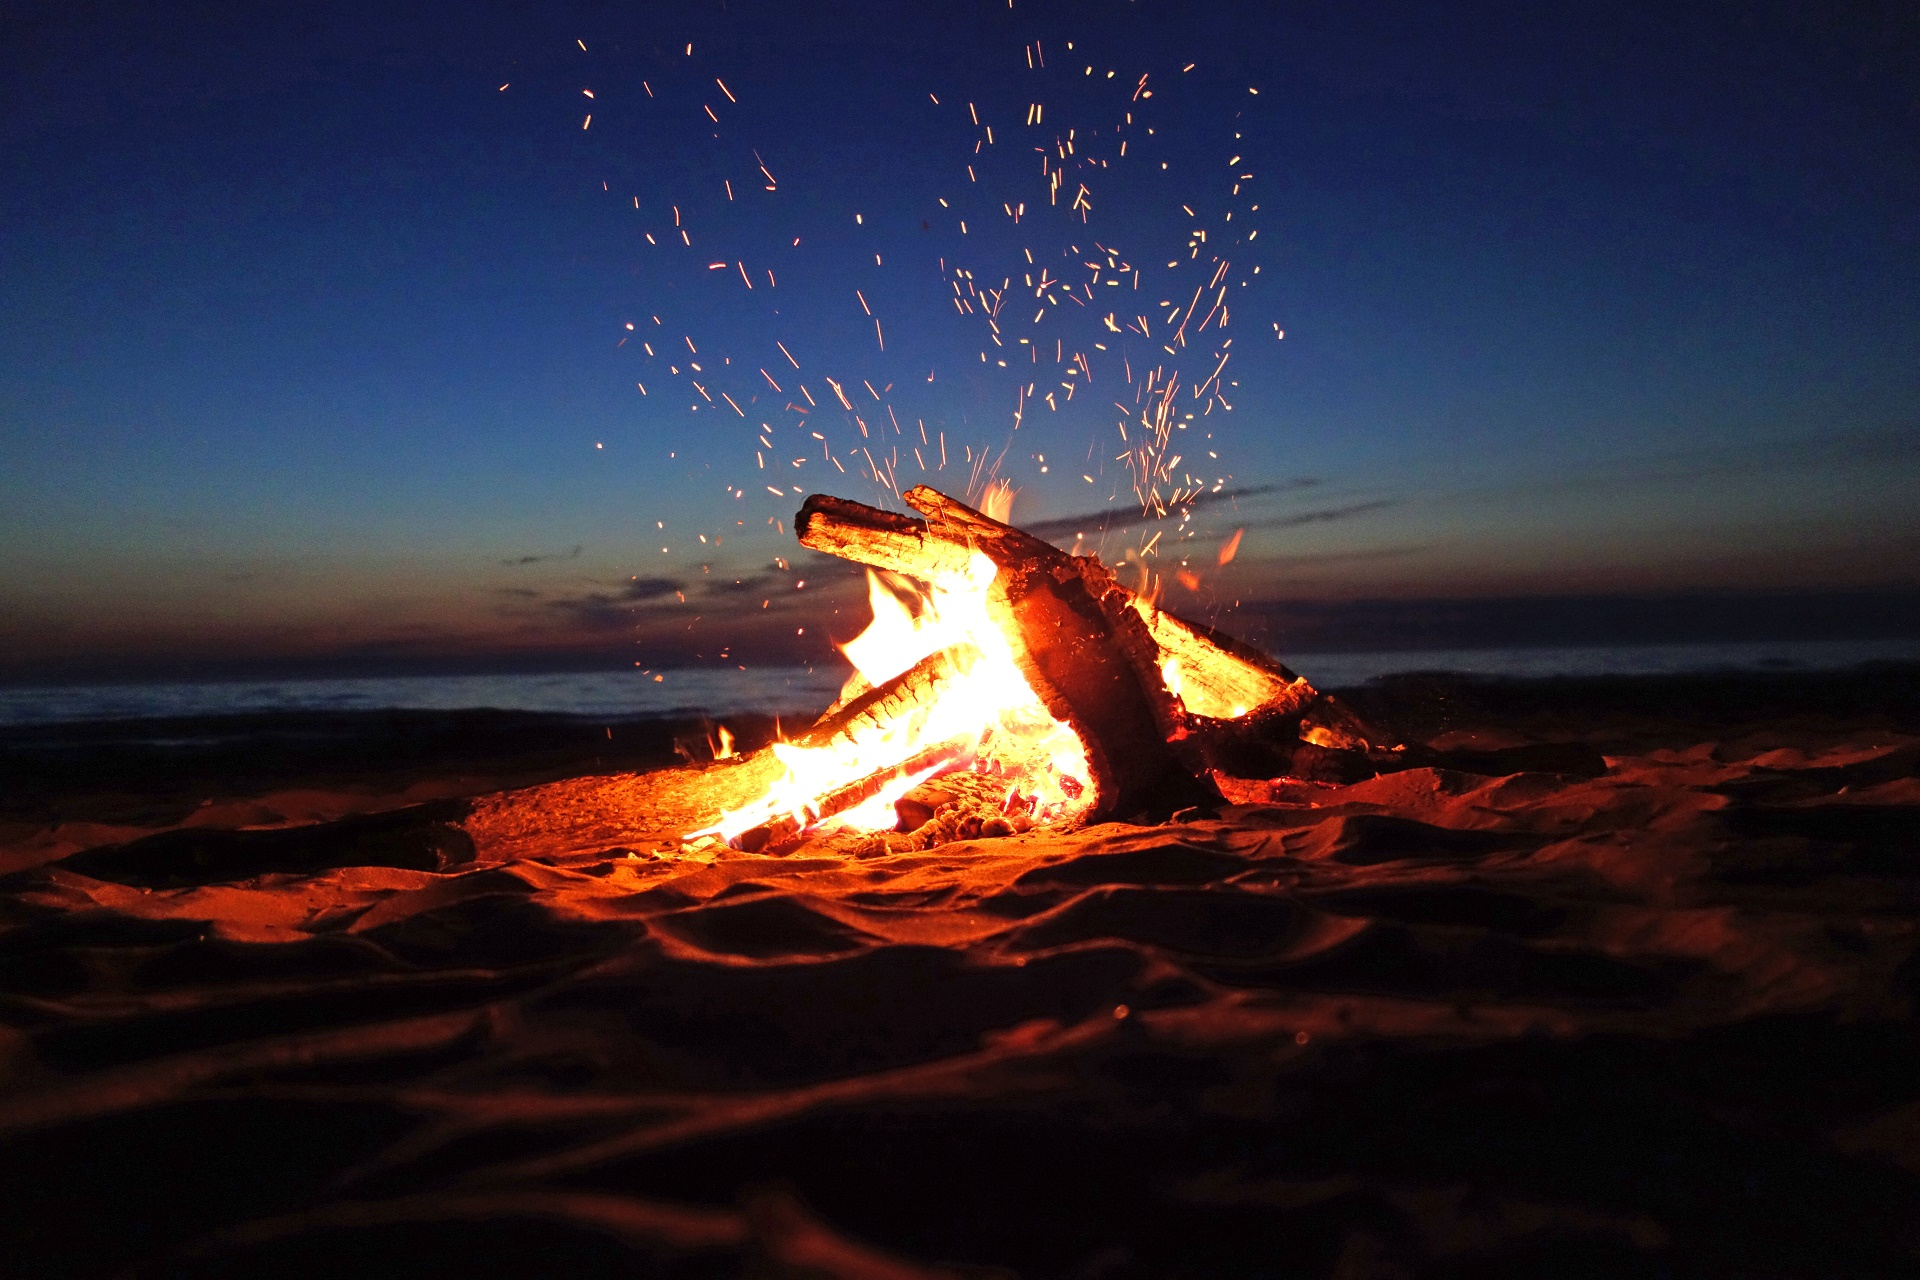 Beach Fire Wallpaper Free: Campfire Ready For Marshmallows